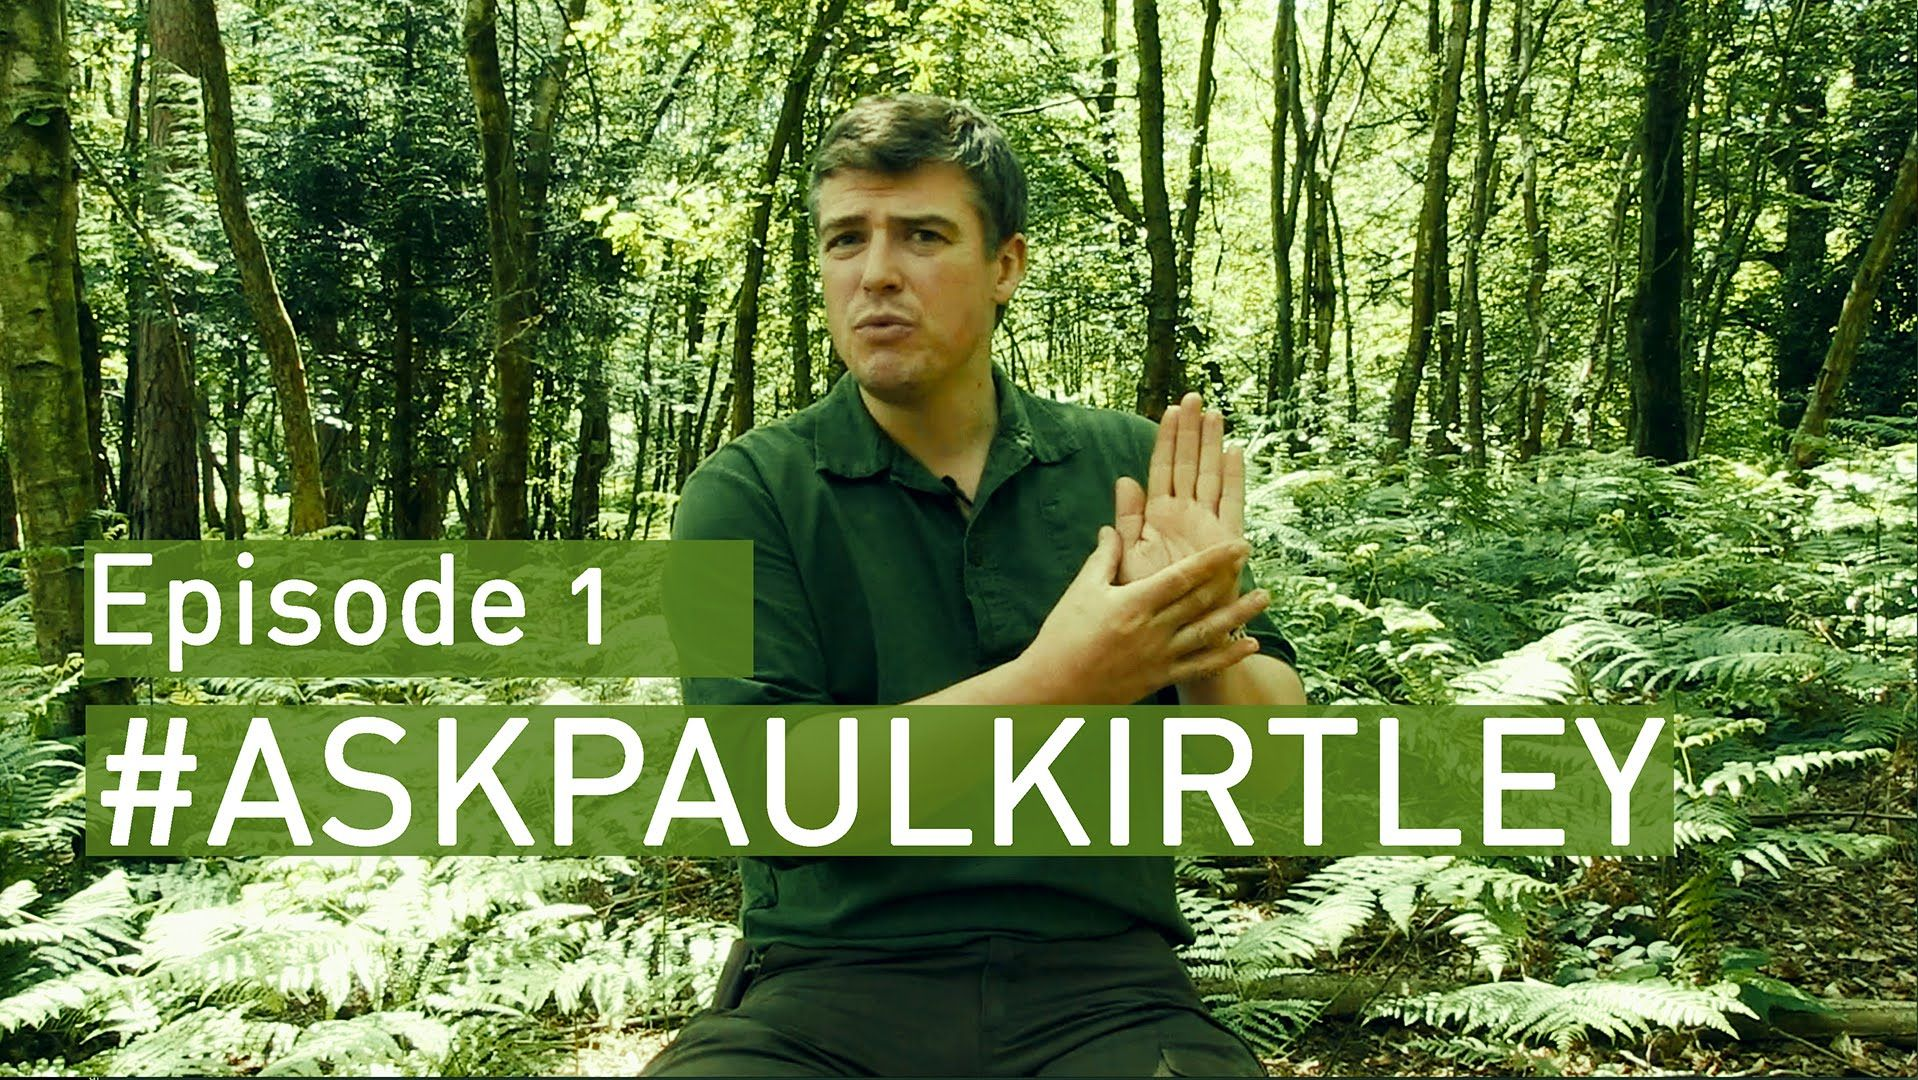 Askpaulkirtley Is Your Chance To Ask Paul Kirtley